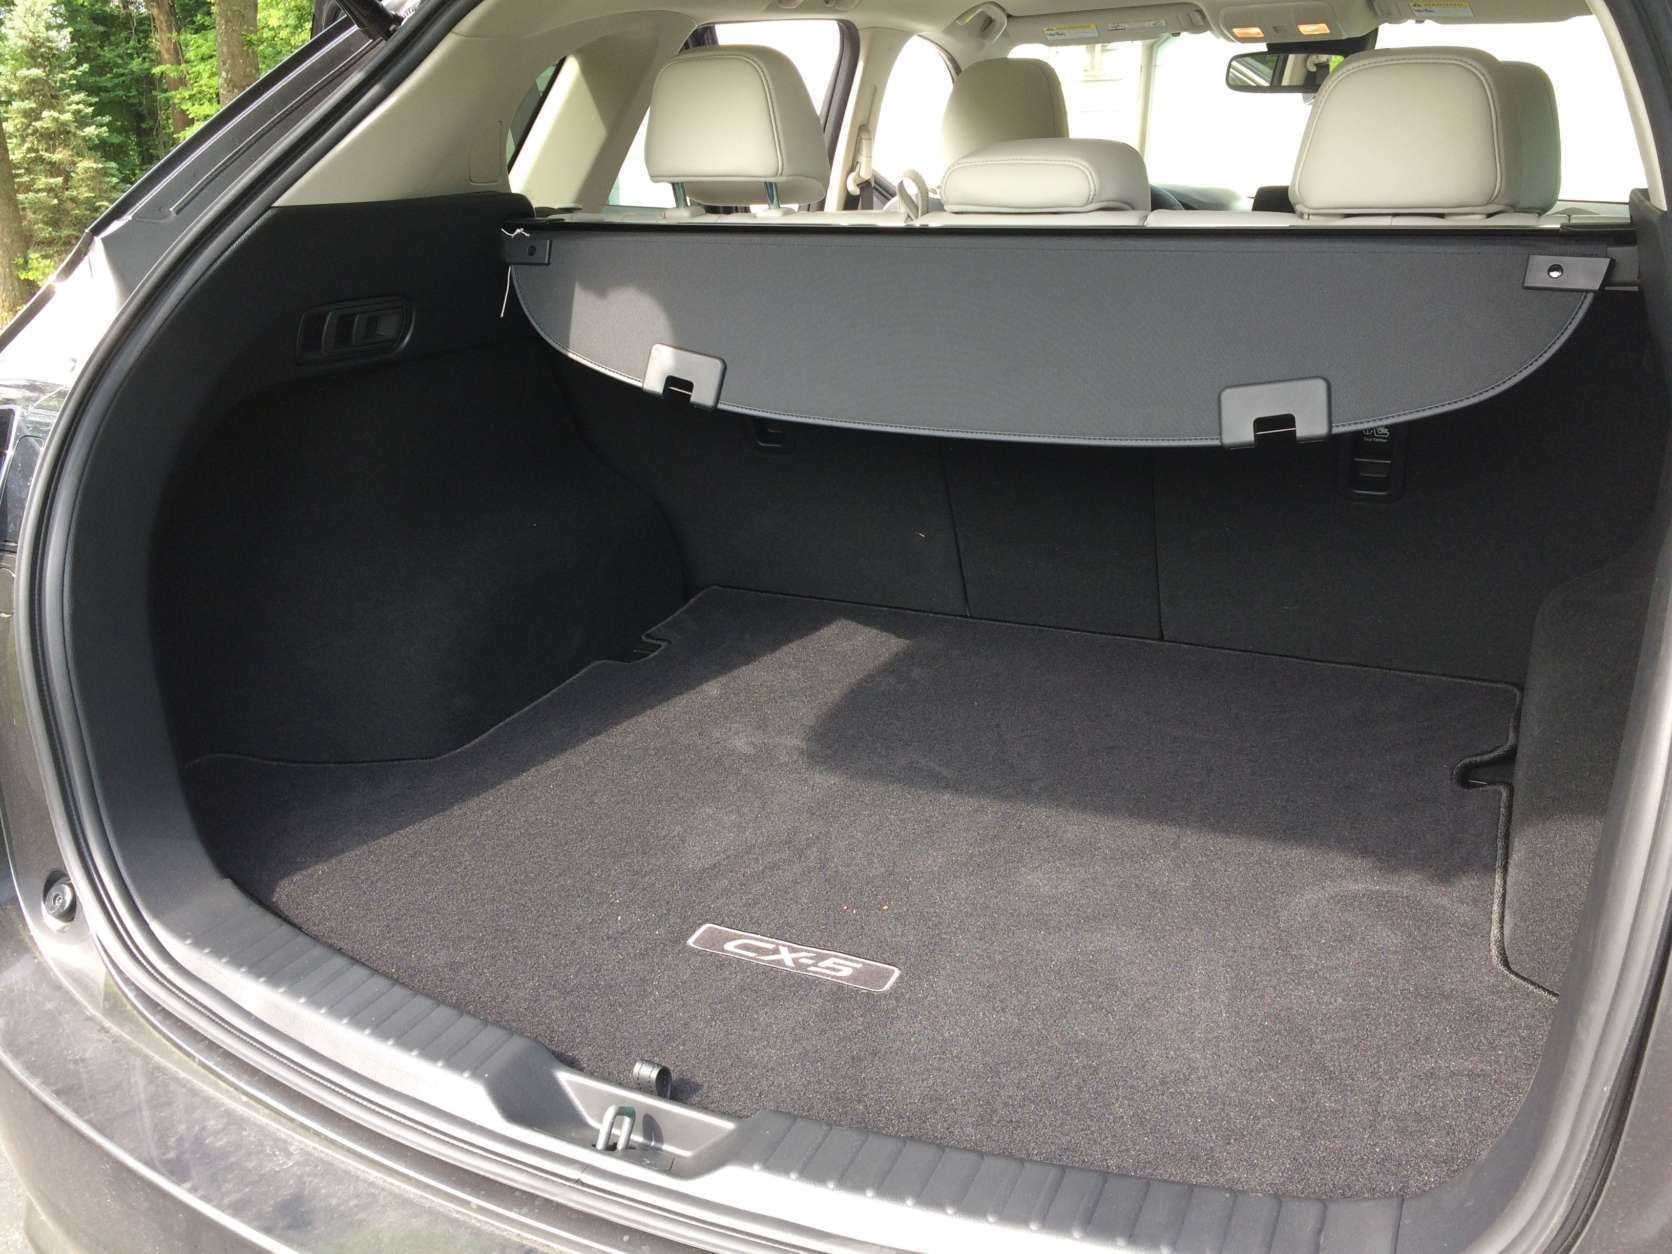 Cargo space is competitive in the class with good room. (WTOP/Mike Parris)